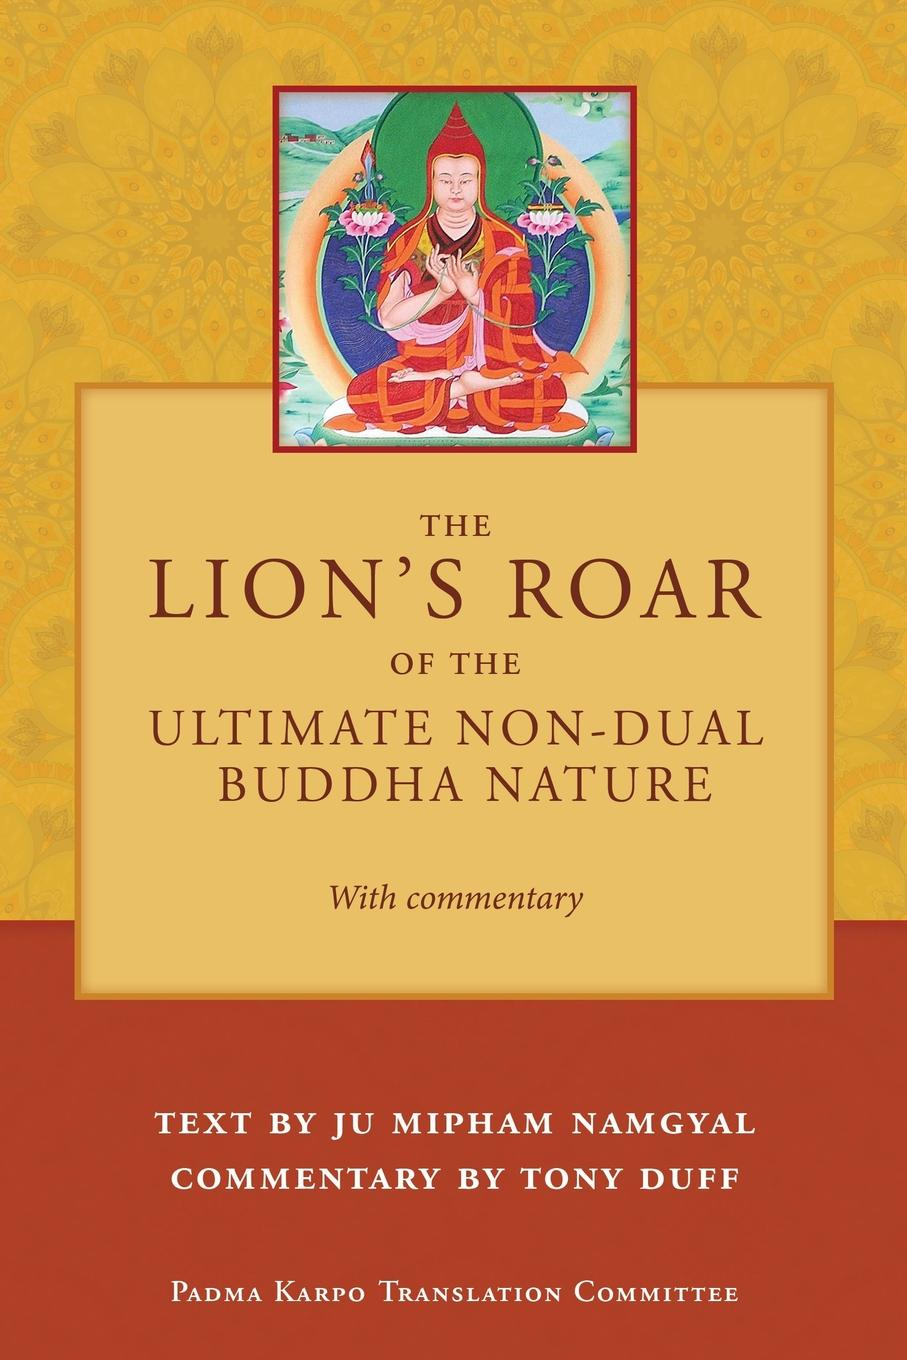 Tony Duff The Lion.s Roar of the Ultimate Non-Dual Buddha Nature by Ju Mipham with Commentary by Tony Duff цена 2017